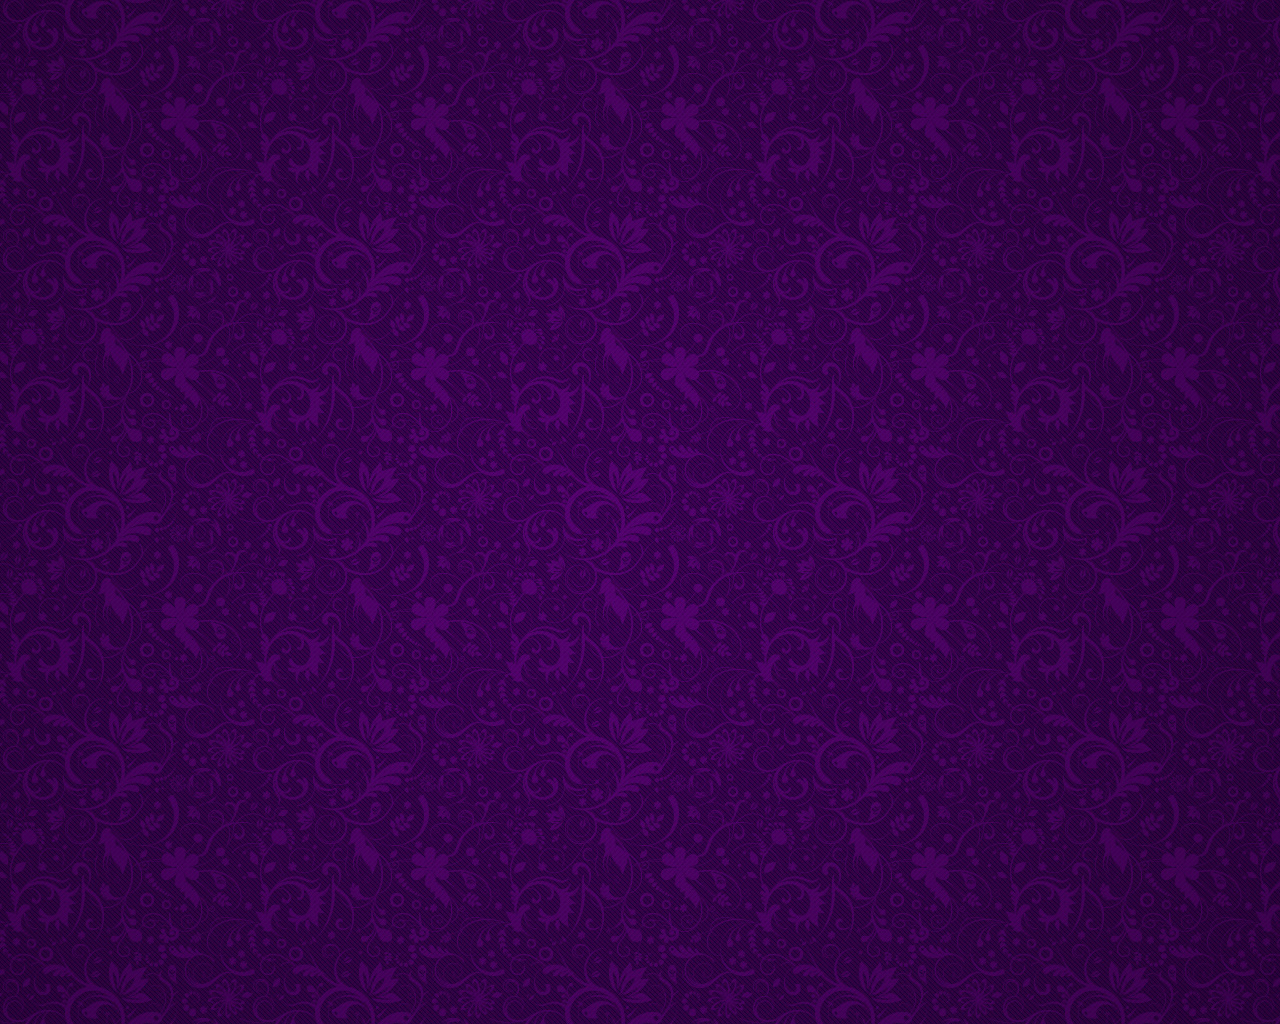 Light purple wallpaper pattern